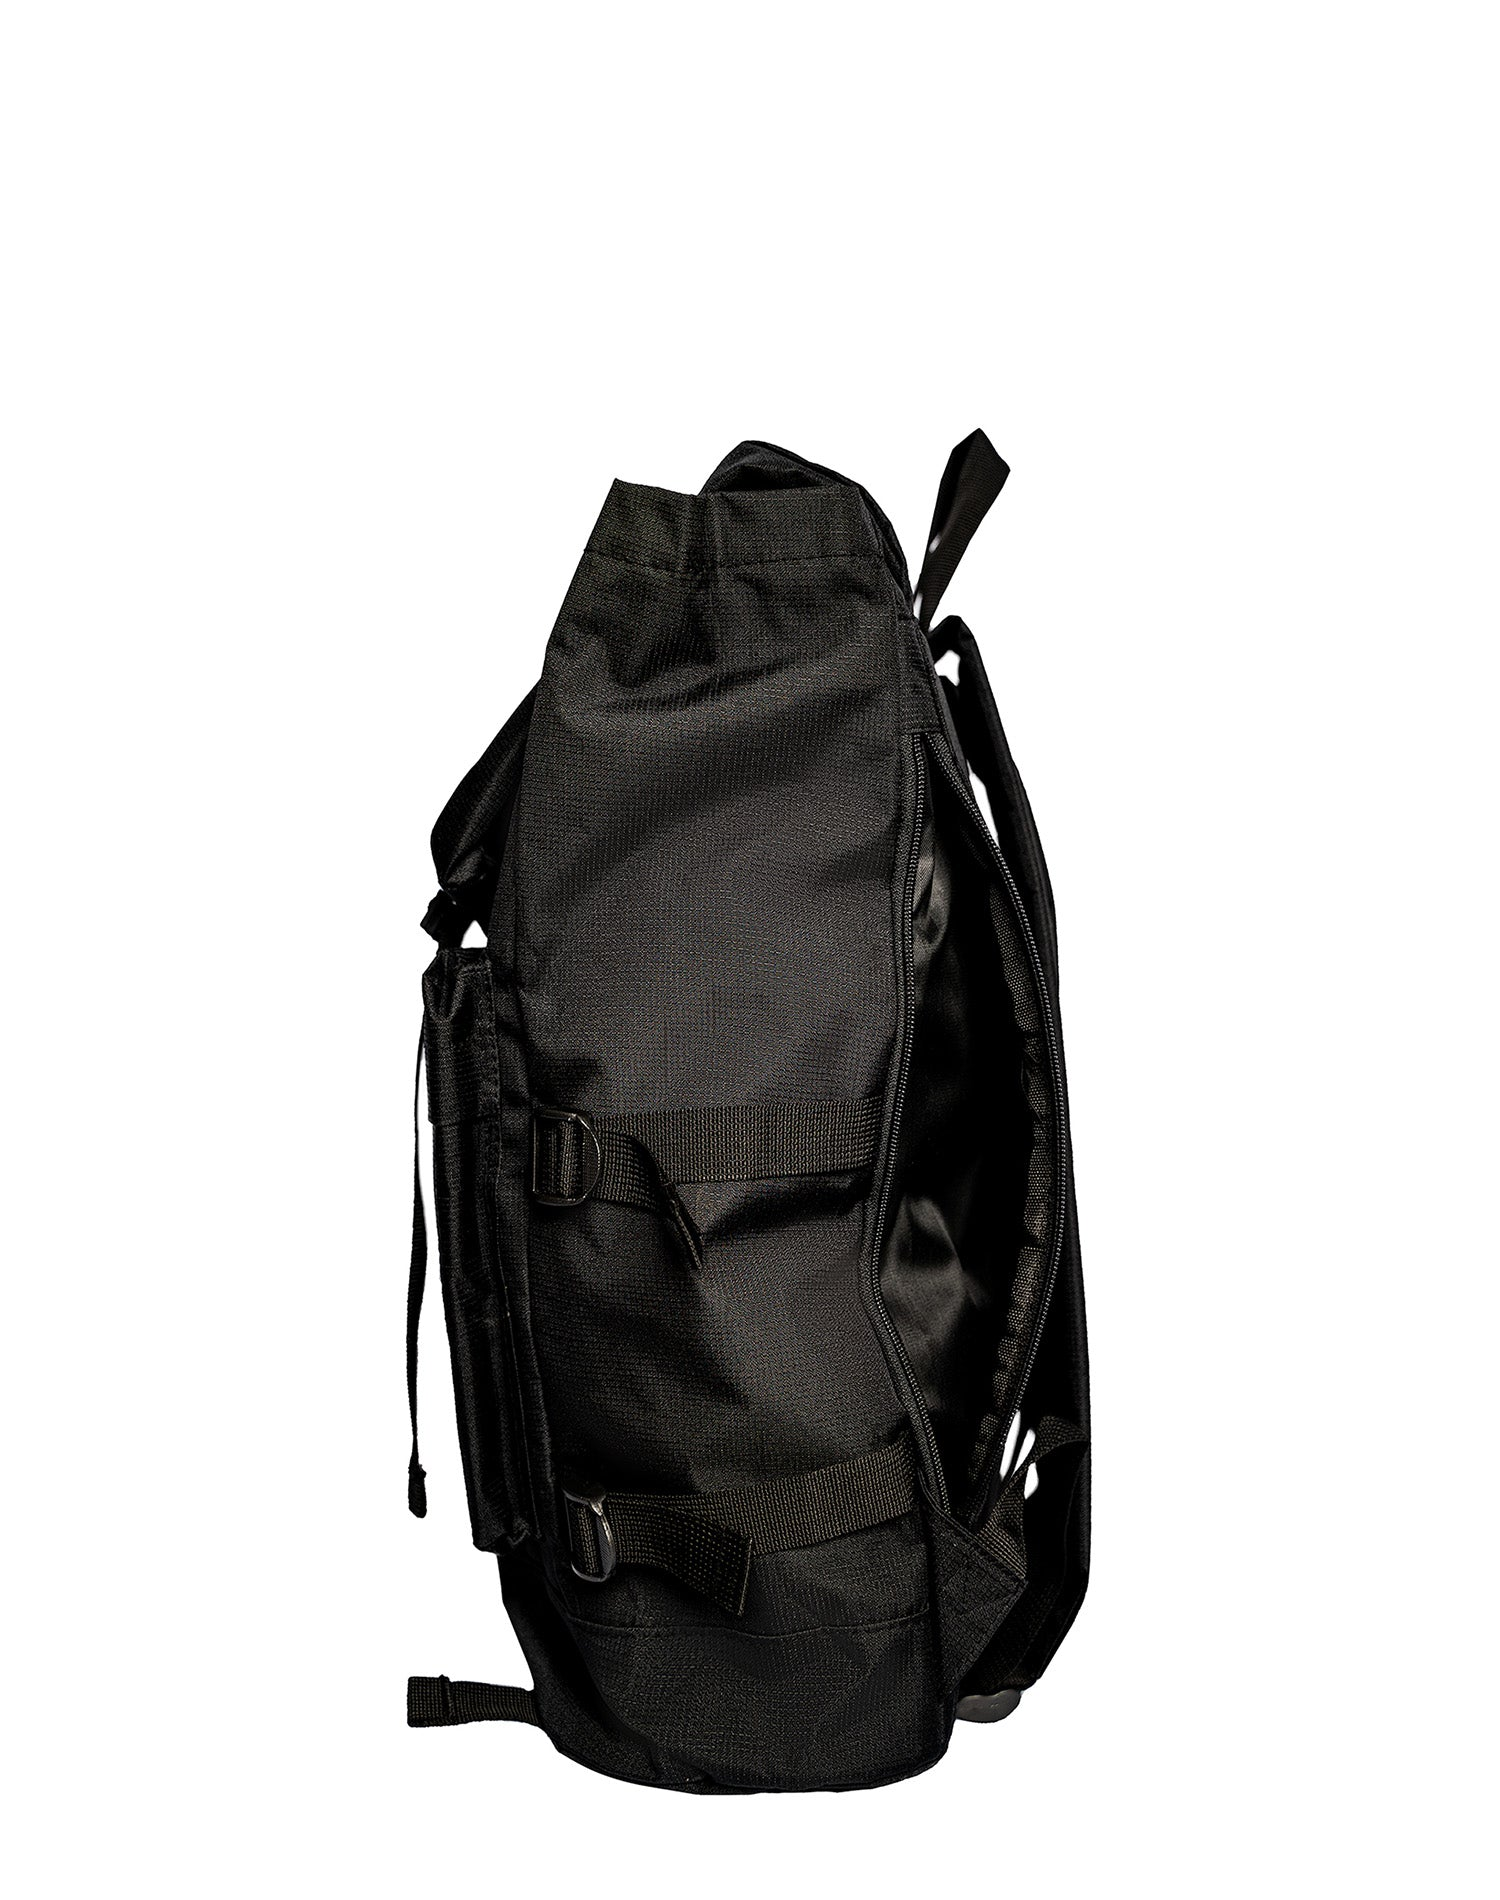 The Black Moonset Waterproof Backpack.黑色防水背囊